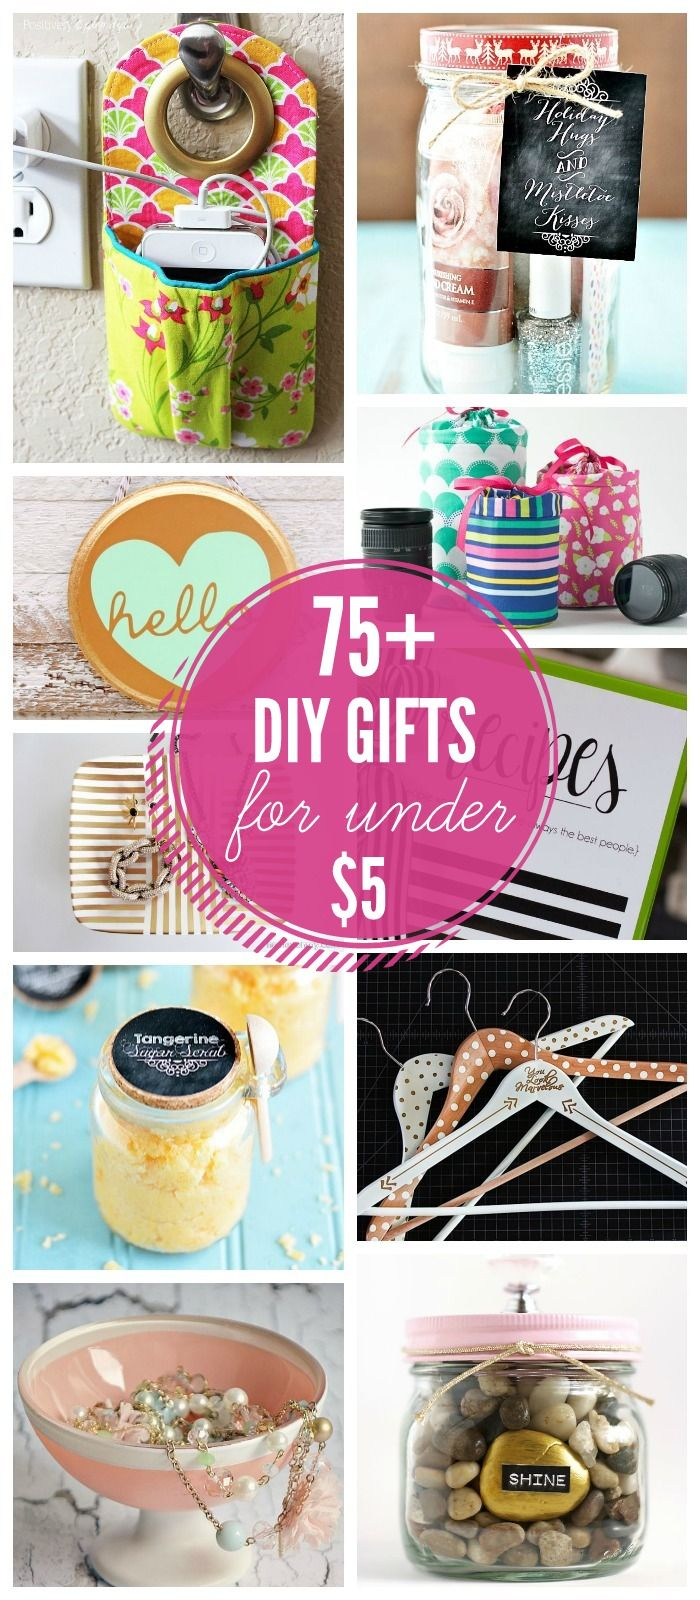 Handmade Gifts On Pinterest DIY Gifts DIY Decorating